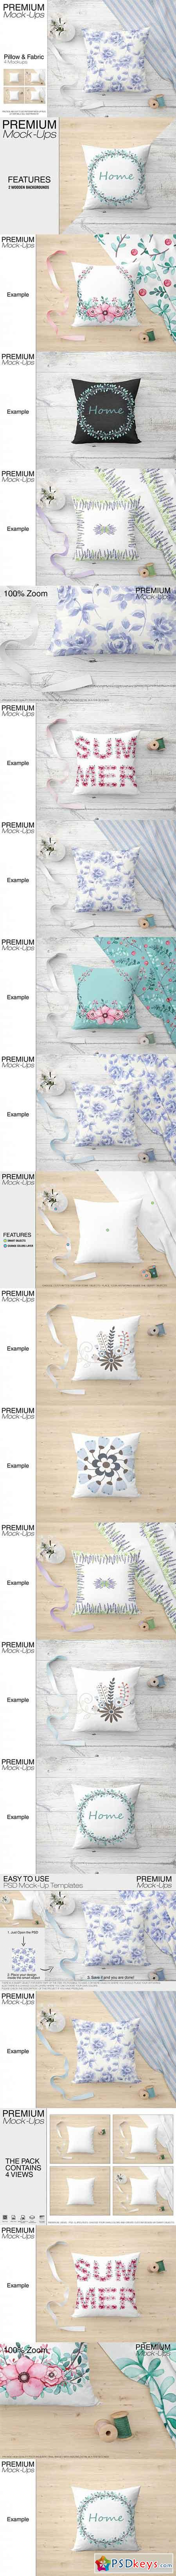 Pillow & Fabric Set 3450817